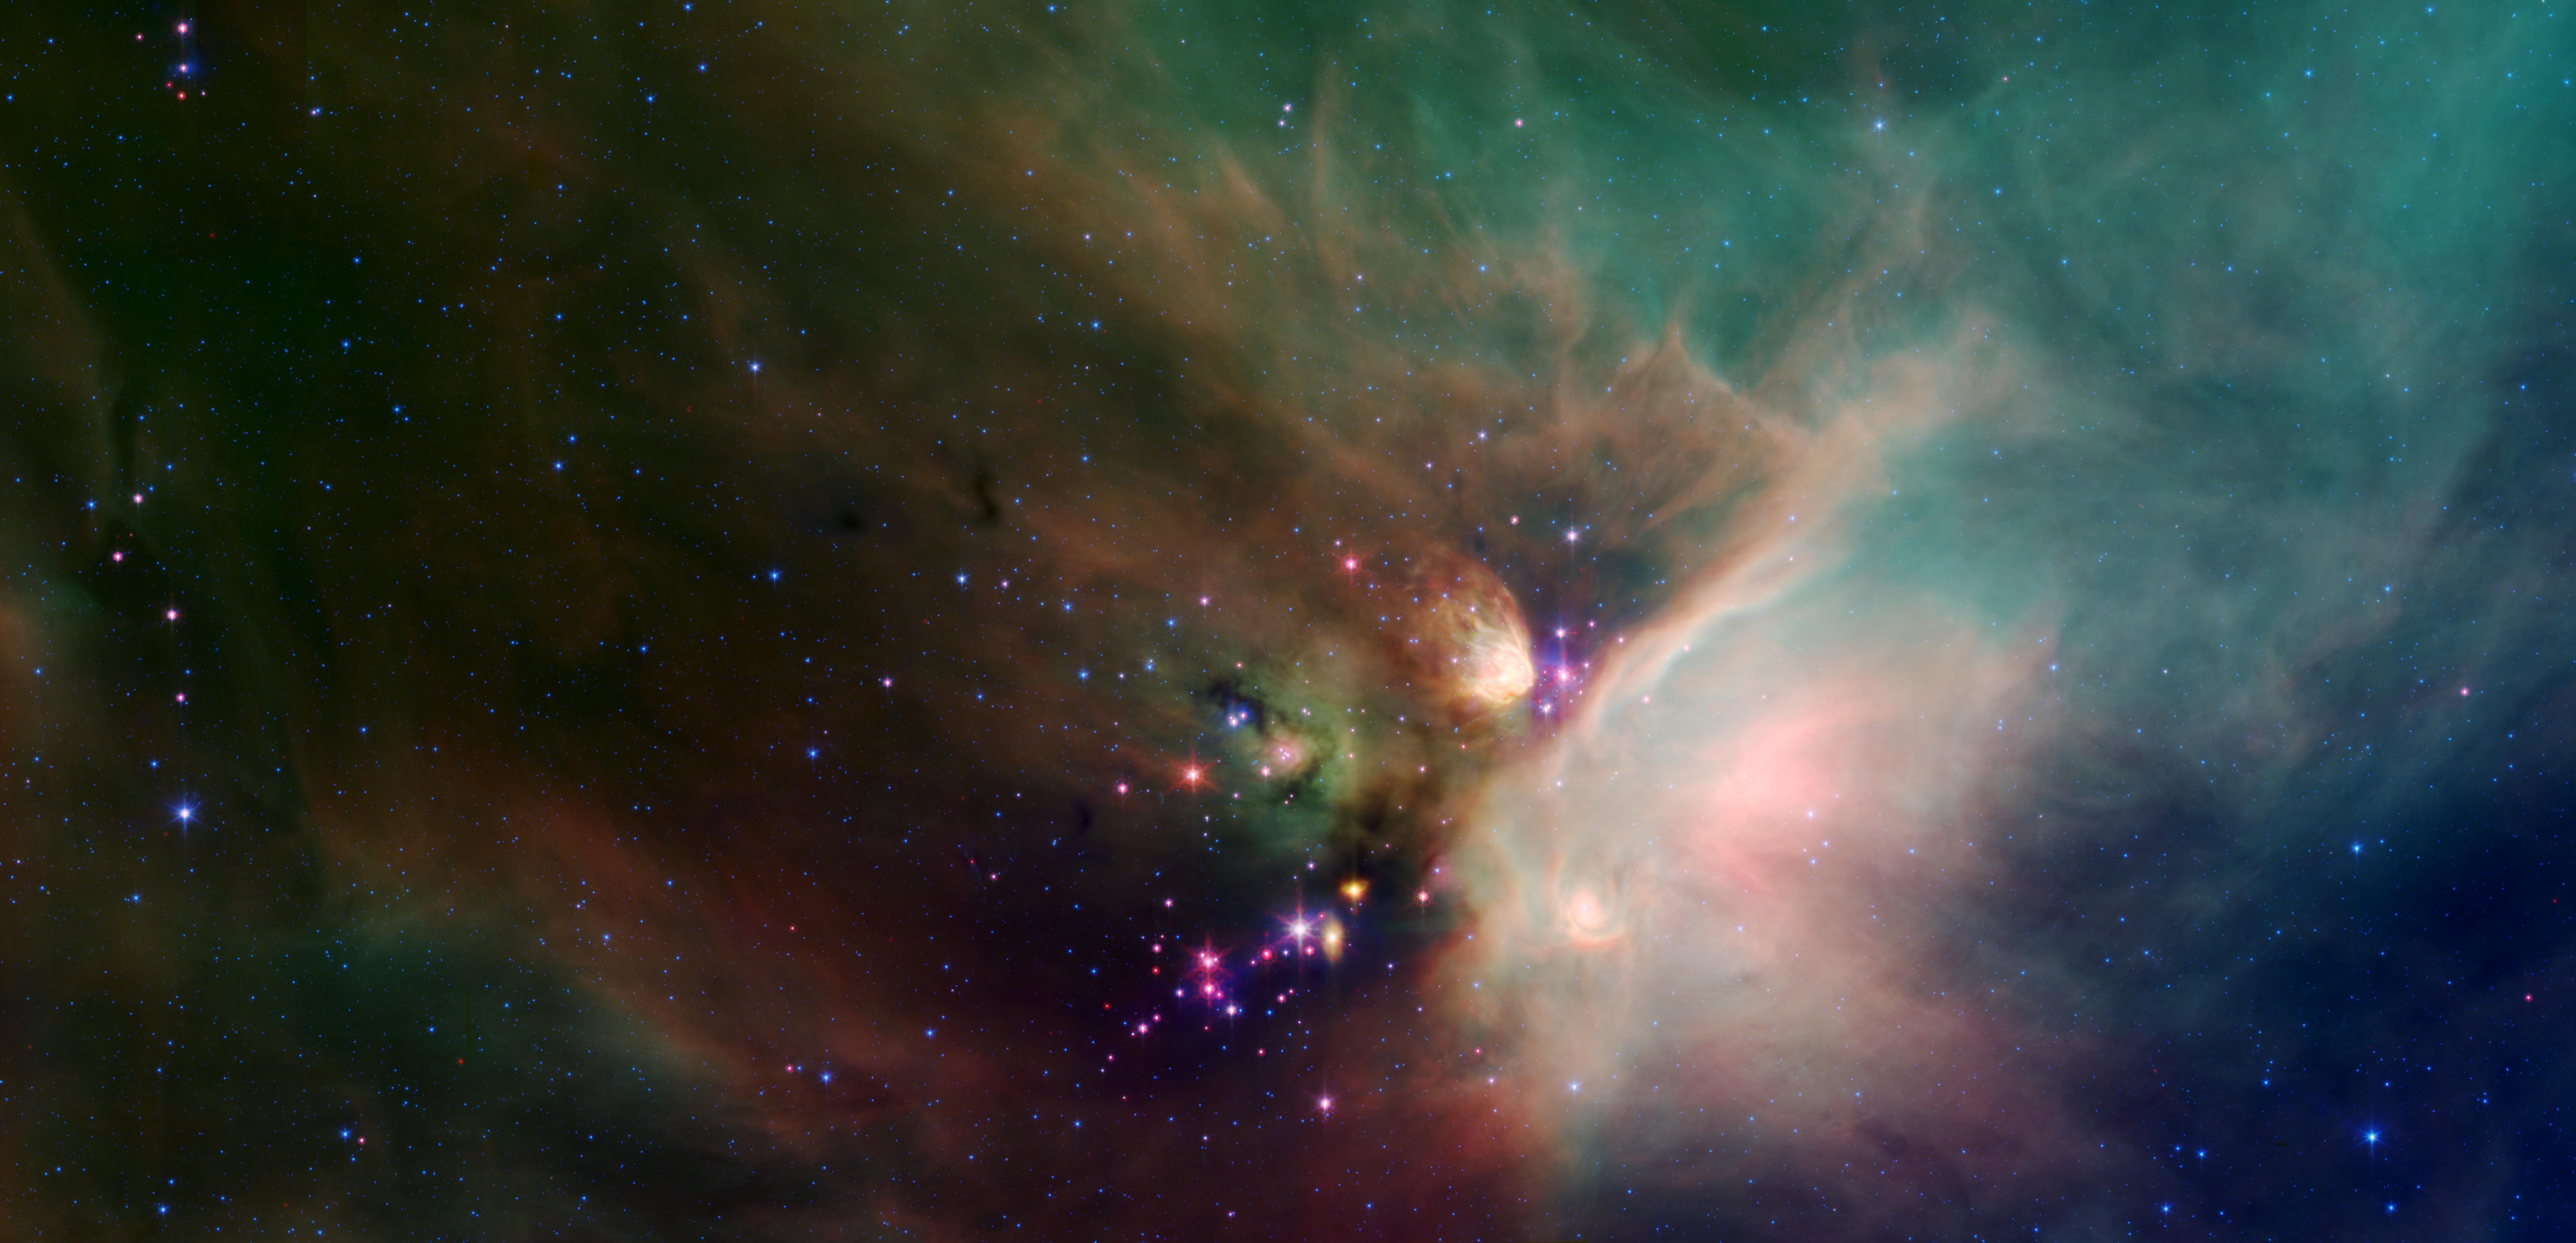 A blanket of green- and orange-colored stellar dust surrounds a grouping of purple, blue and red stars.